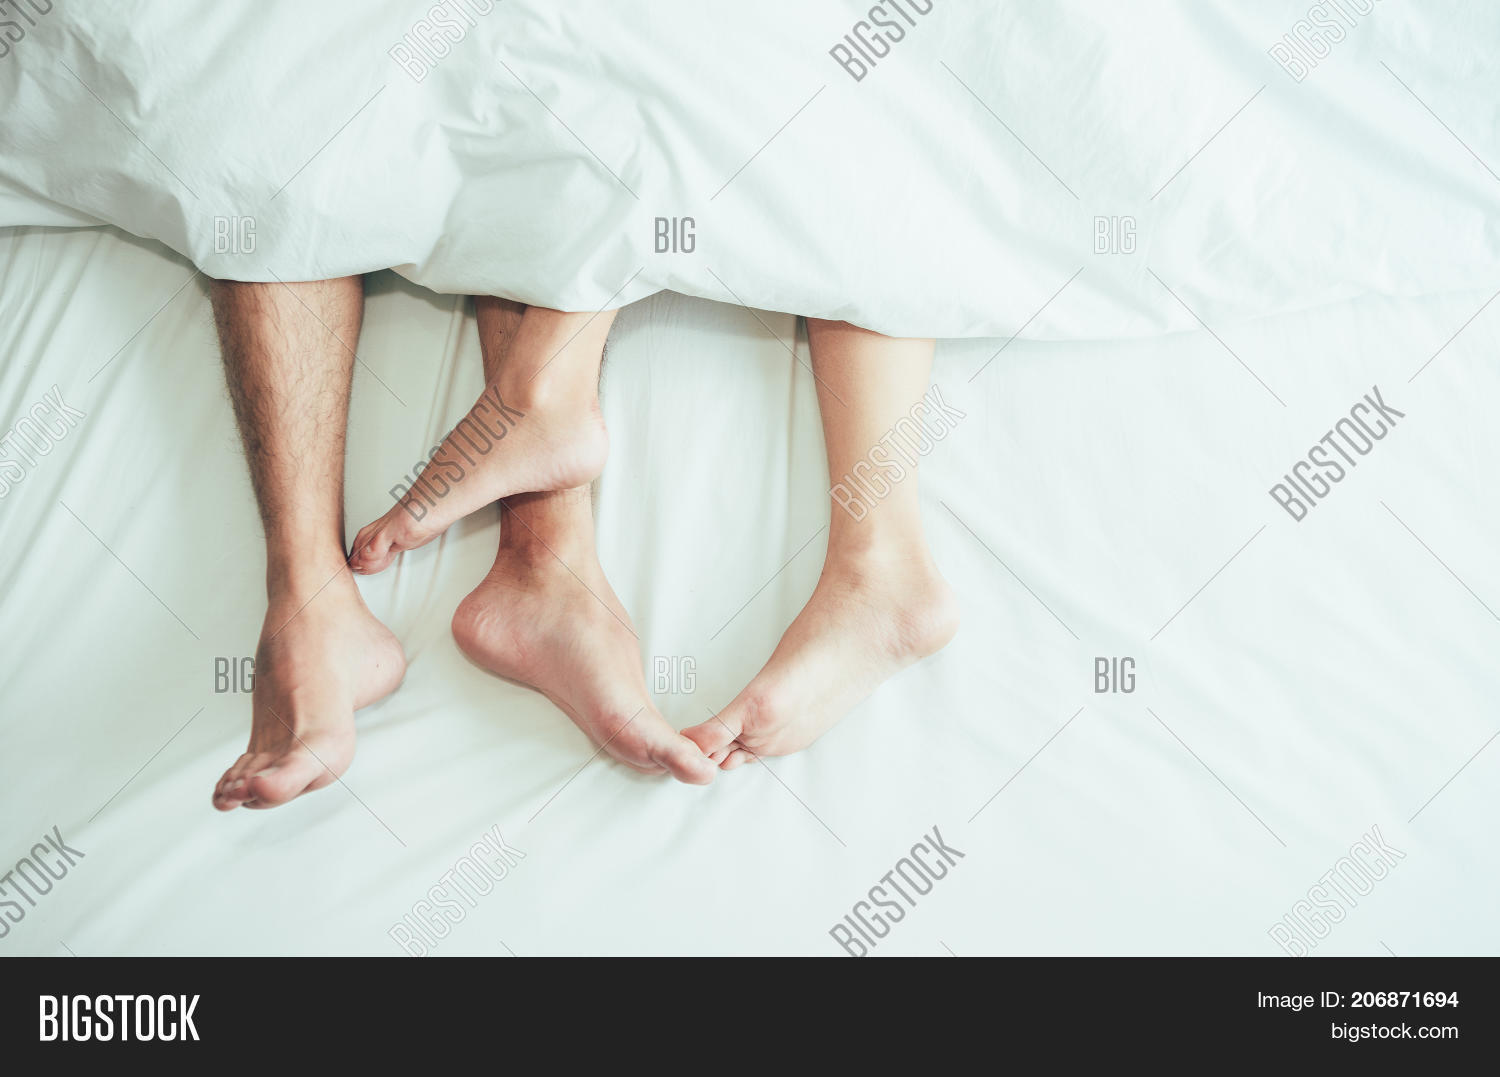 The Feet Or Foot Of Couples Sleeping On The Bed And Cover By The White Blanket